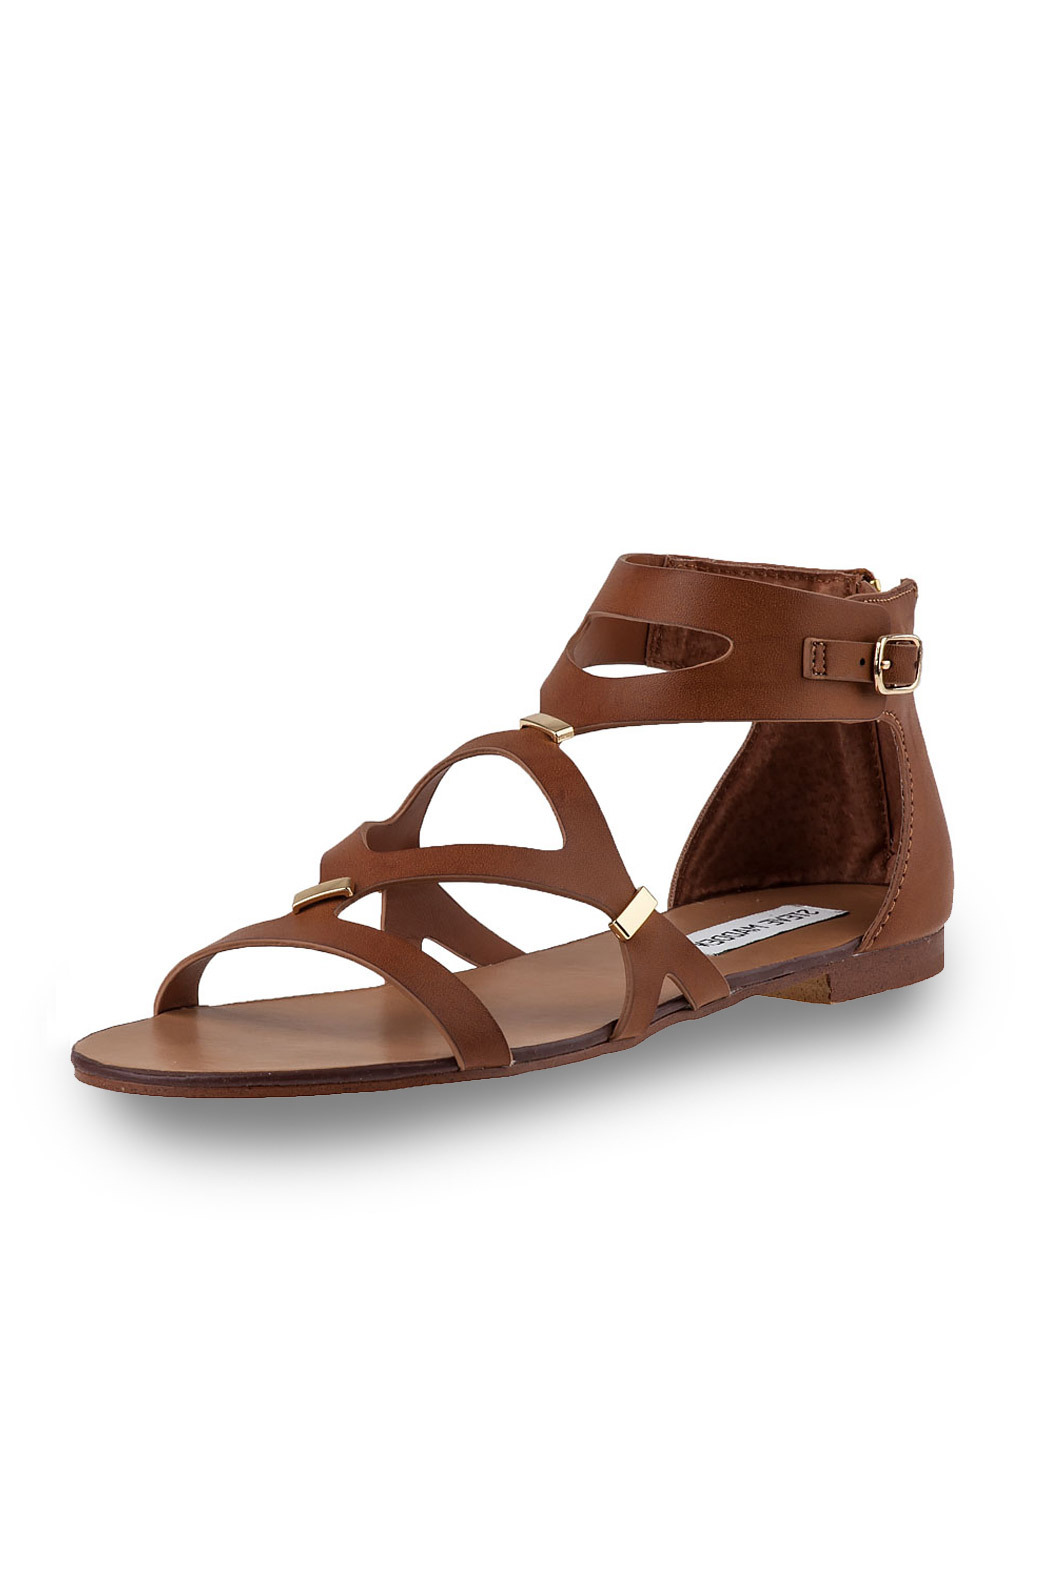 Steve Madden Comma Sandal from Marina by y&i clothing ...